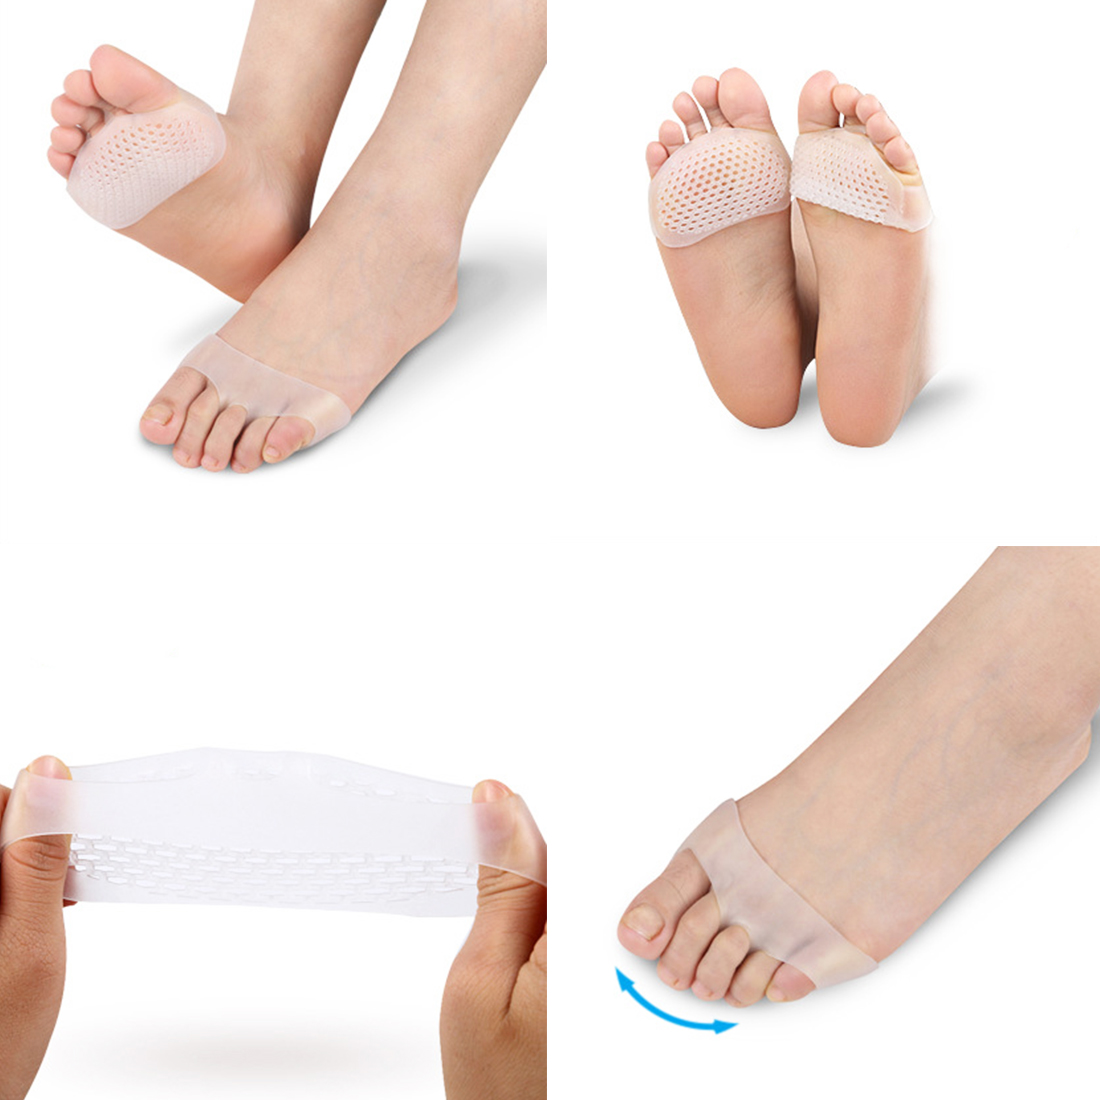 Feet Care Heel Shoes Slip Resistant Pads Foot Care Tools 1 Pair Silicone Gel Insoles Pads Cushions Forefoot Pain Support Front